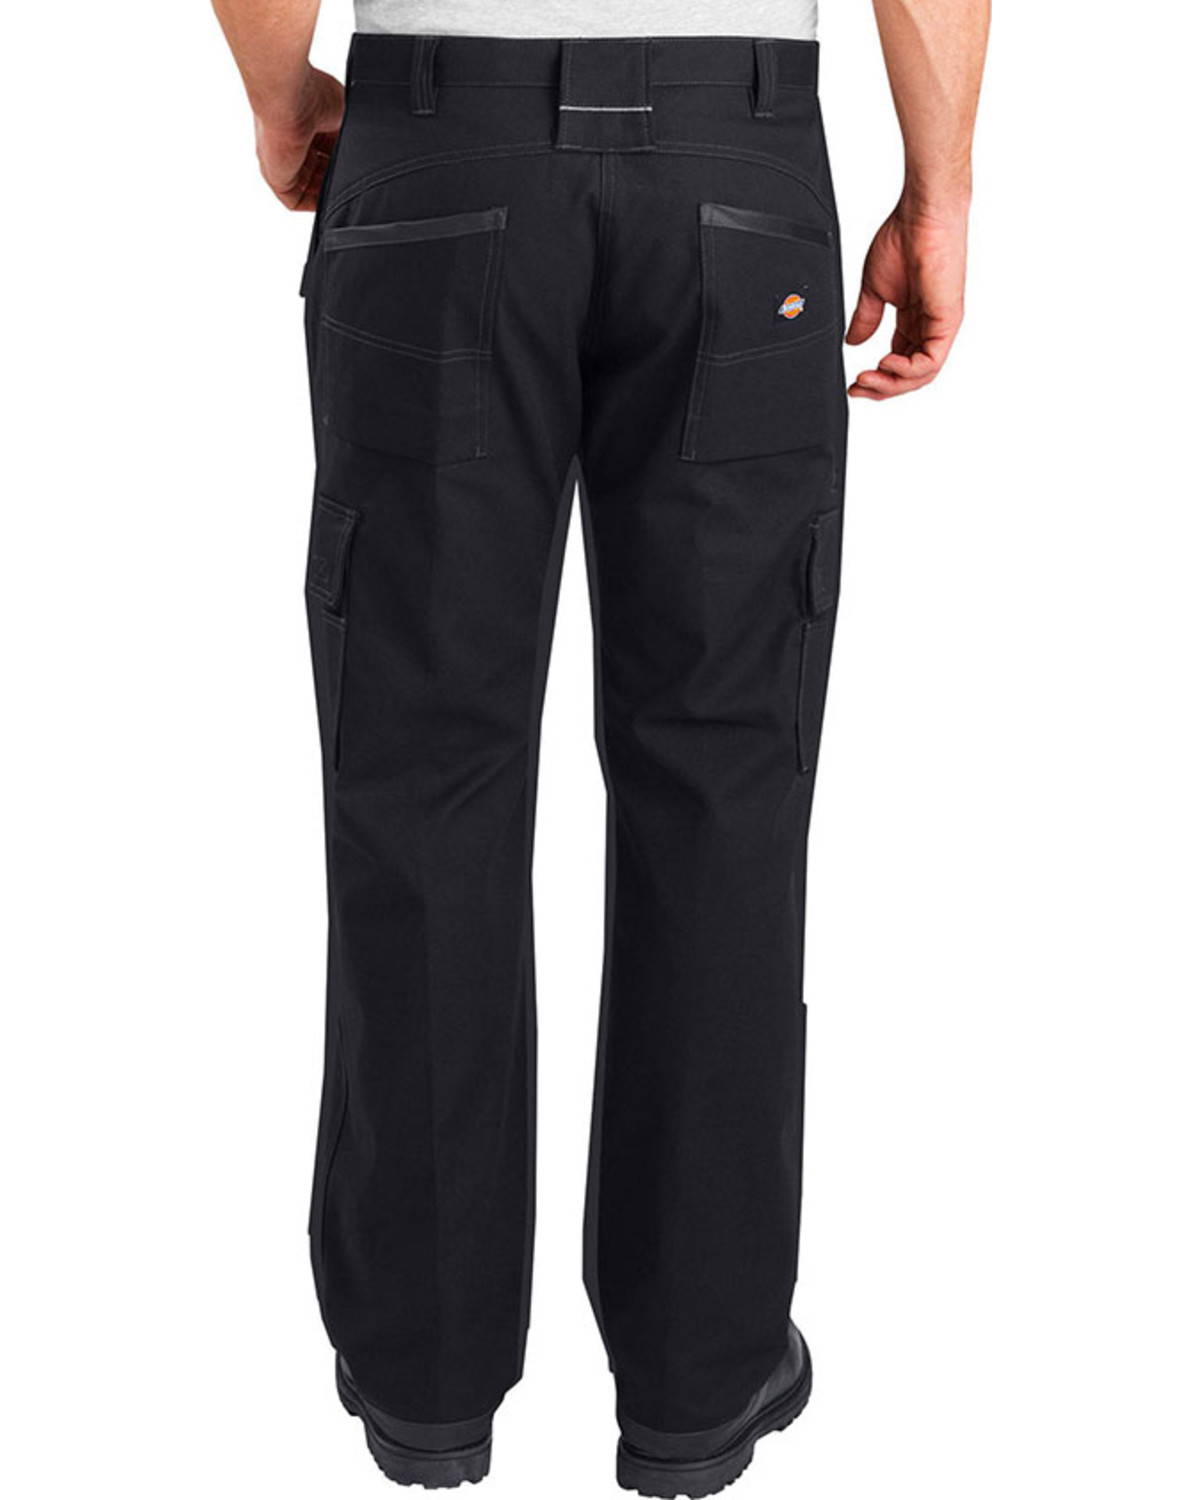 super specials price special buy Dickies Men's Pro Relaxed Cargo Pants